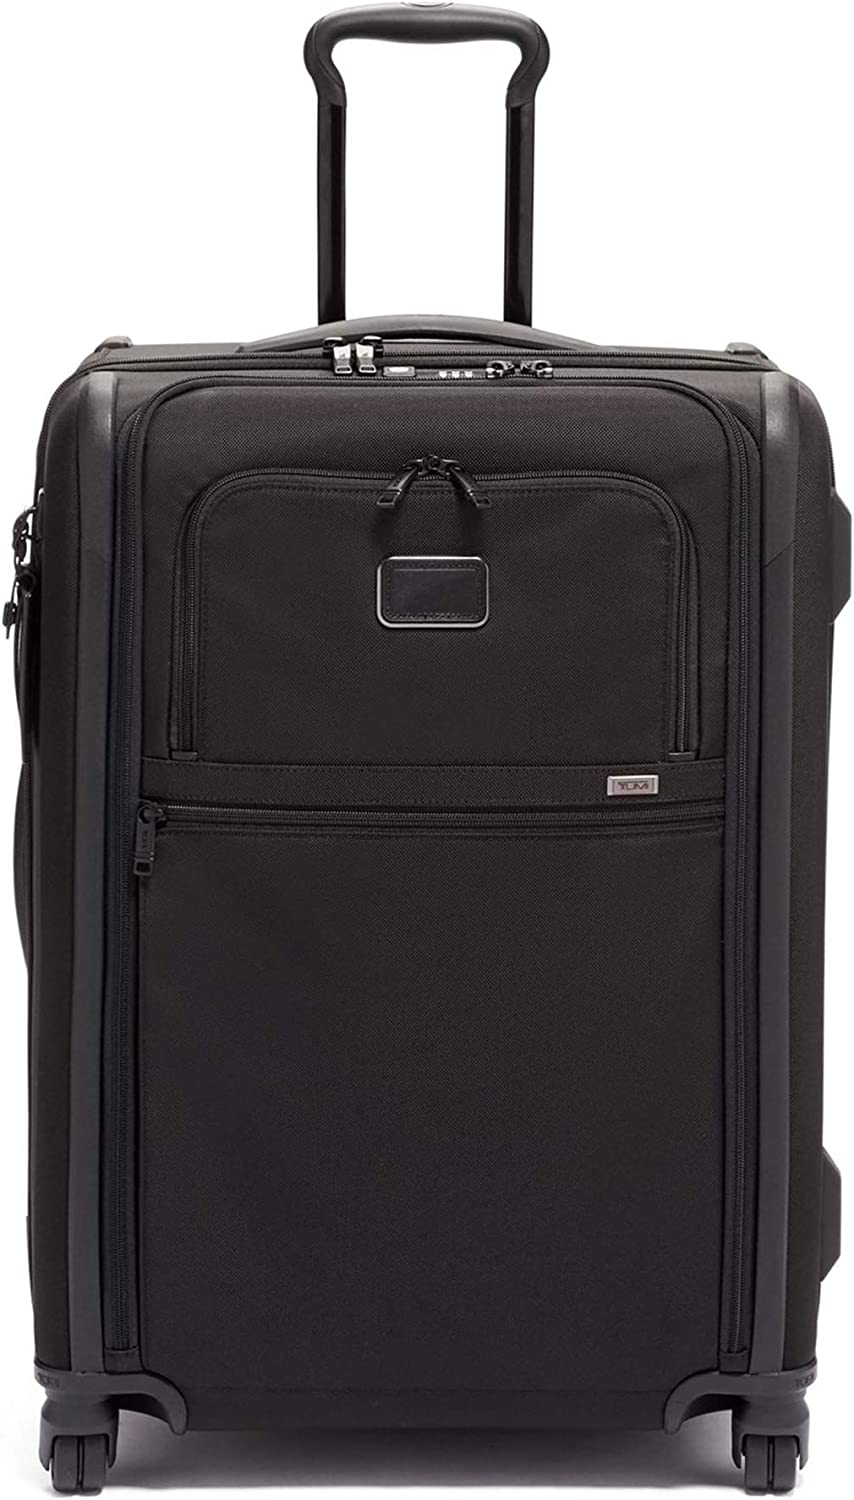 TUMI – Alpha 3 Short Trip Expandable 4 Wheeled Packing Case Suitcase – Rolling Luggage for Men and Women – Black